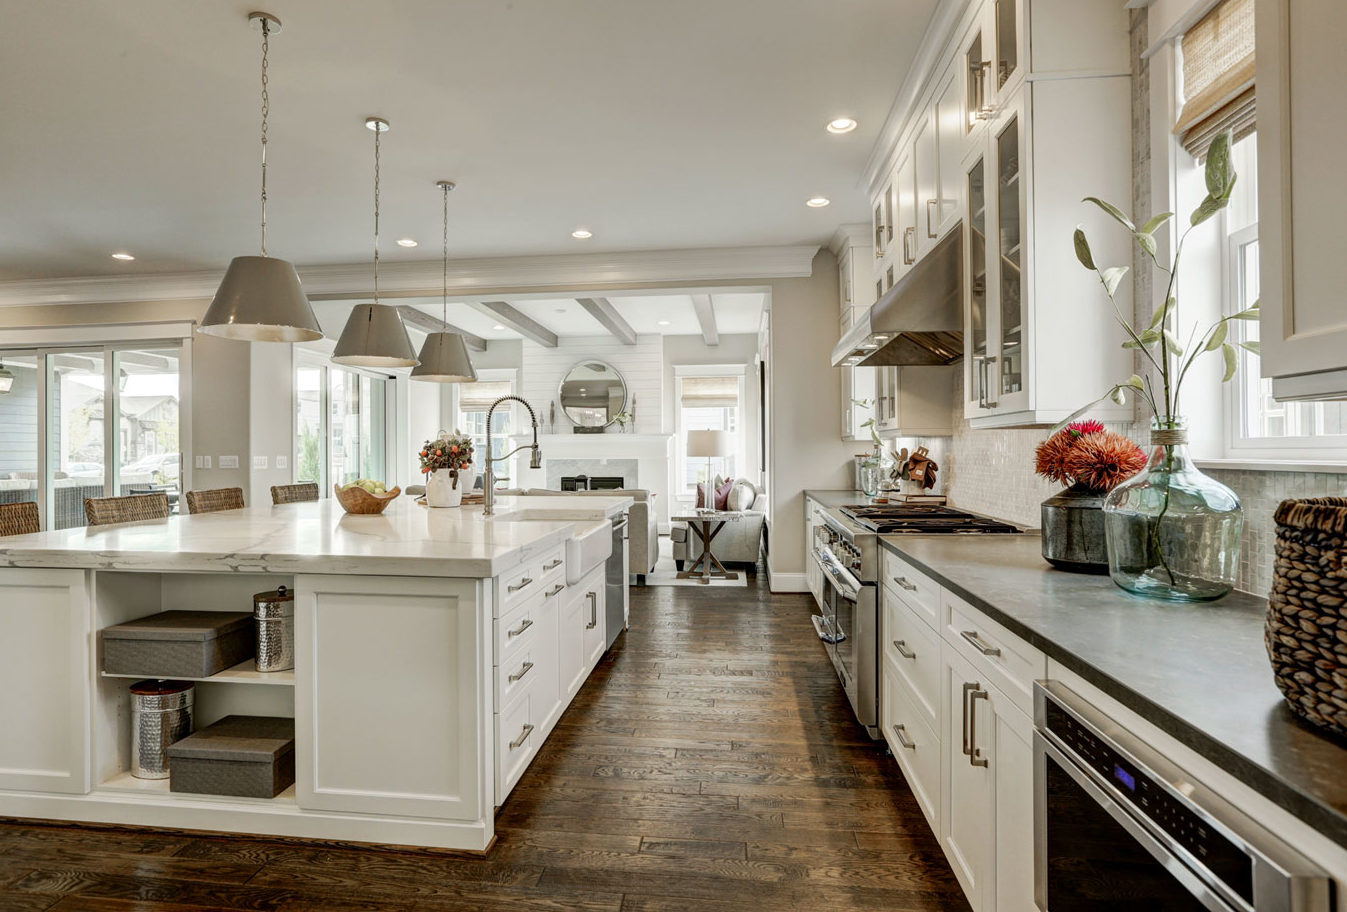 Colorado model home featuring a white farmhouse kitchen with an oversized island and dramatic statement pendants.